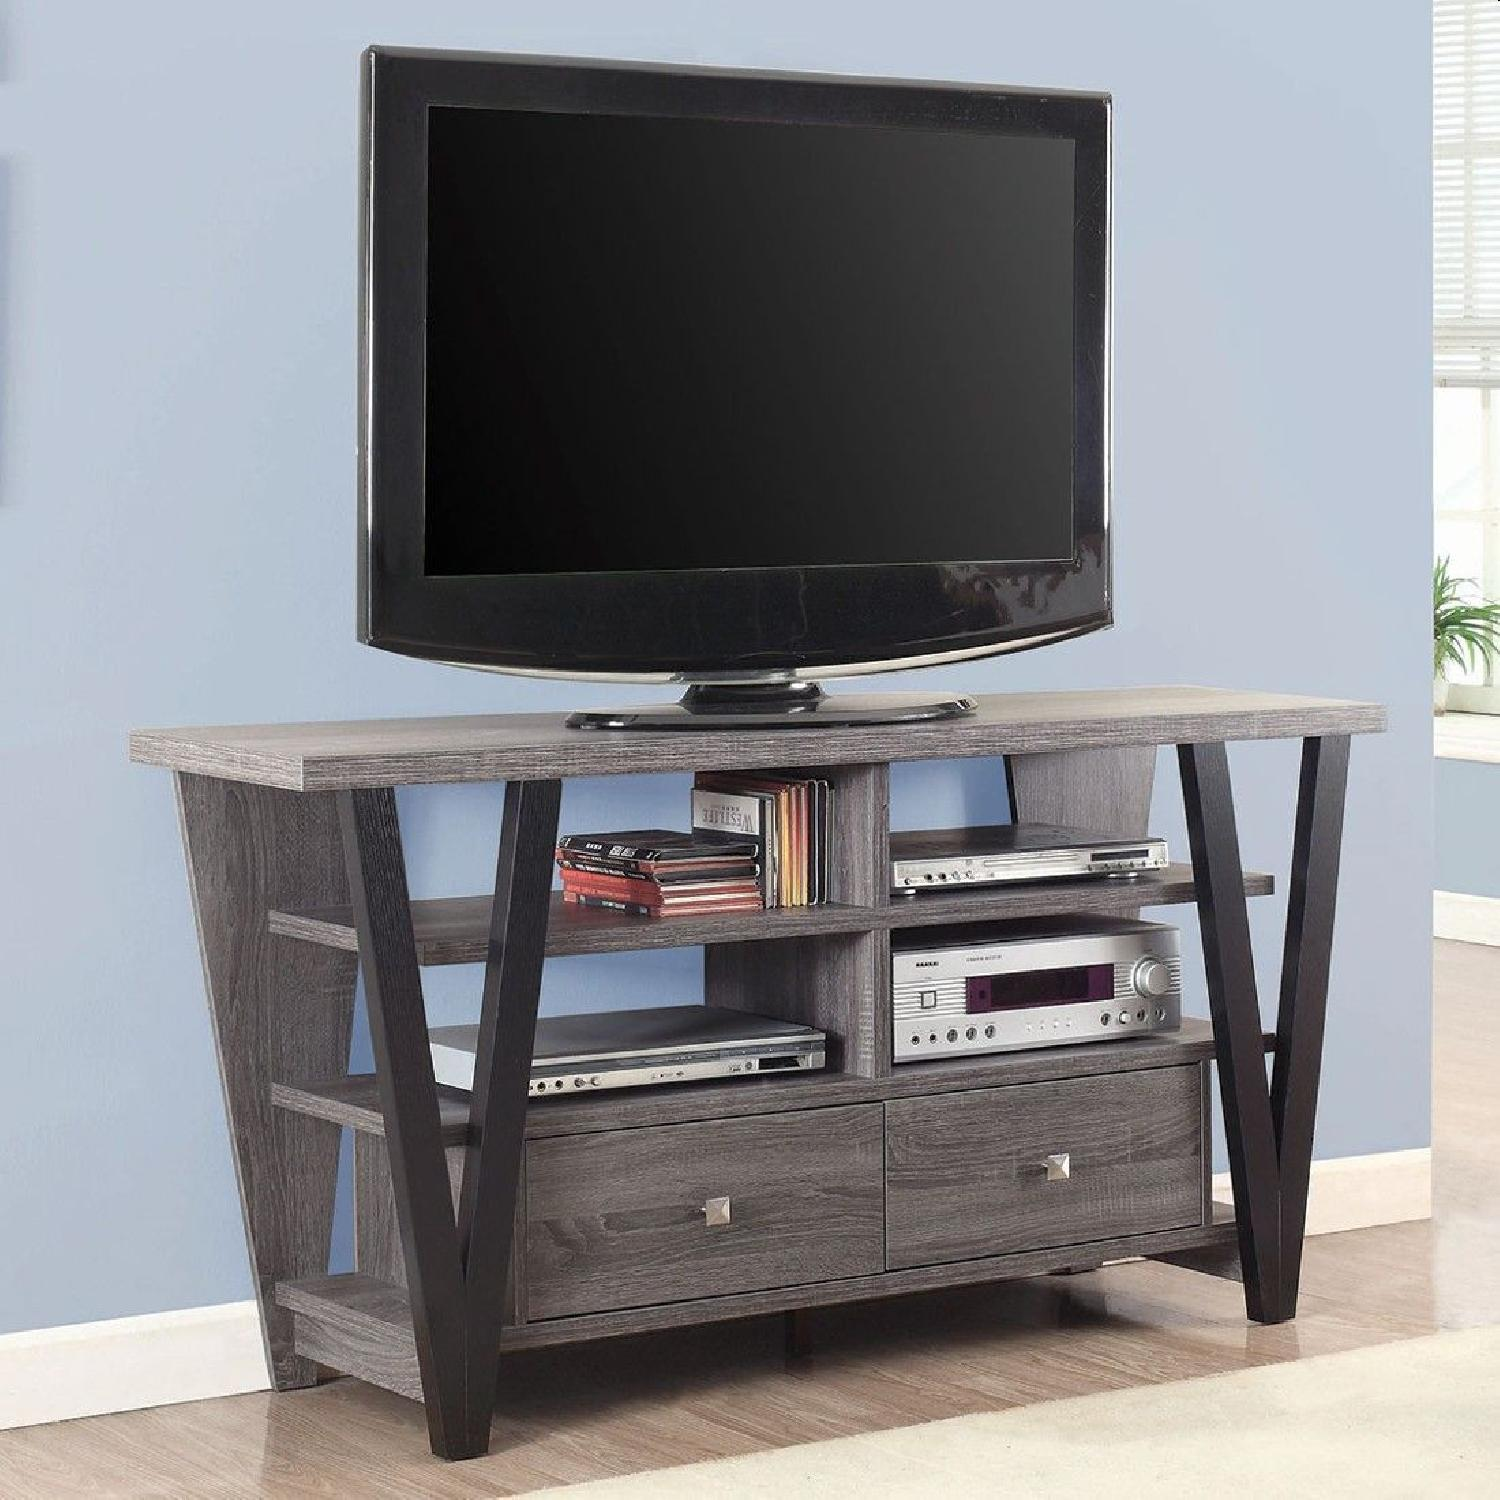 Glam Style TV Console w/ Mirror Accent - image-5